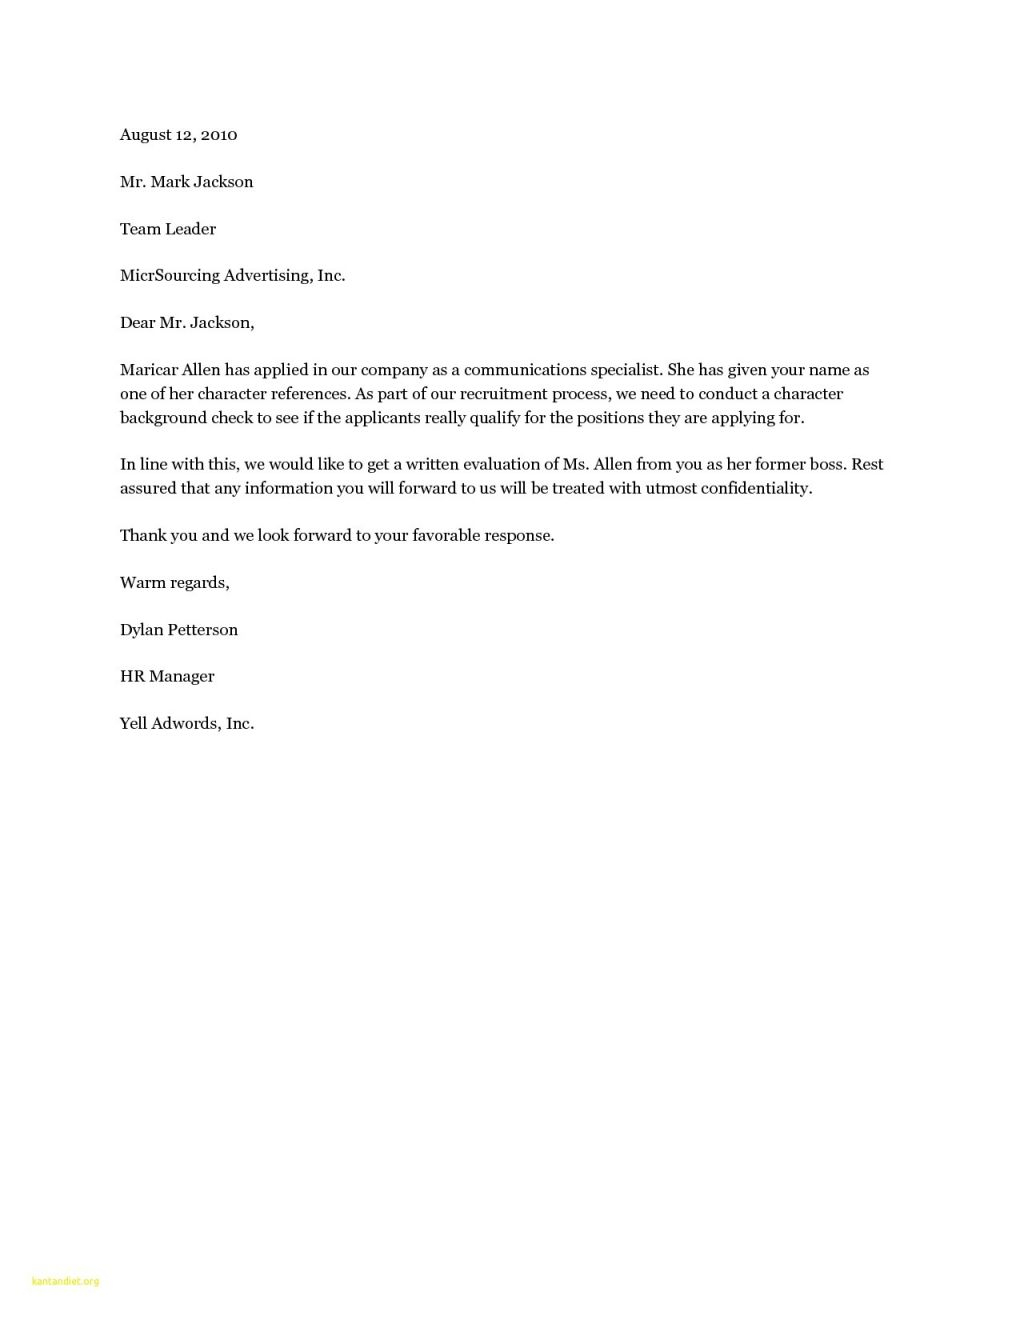 Reference Letter Template From Employer - Beautiful Re Mendation Letter From Employer Na90 – Documentaries